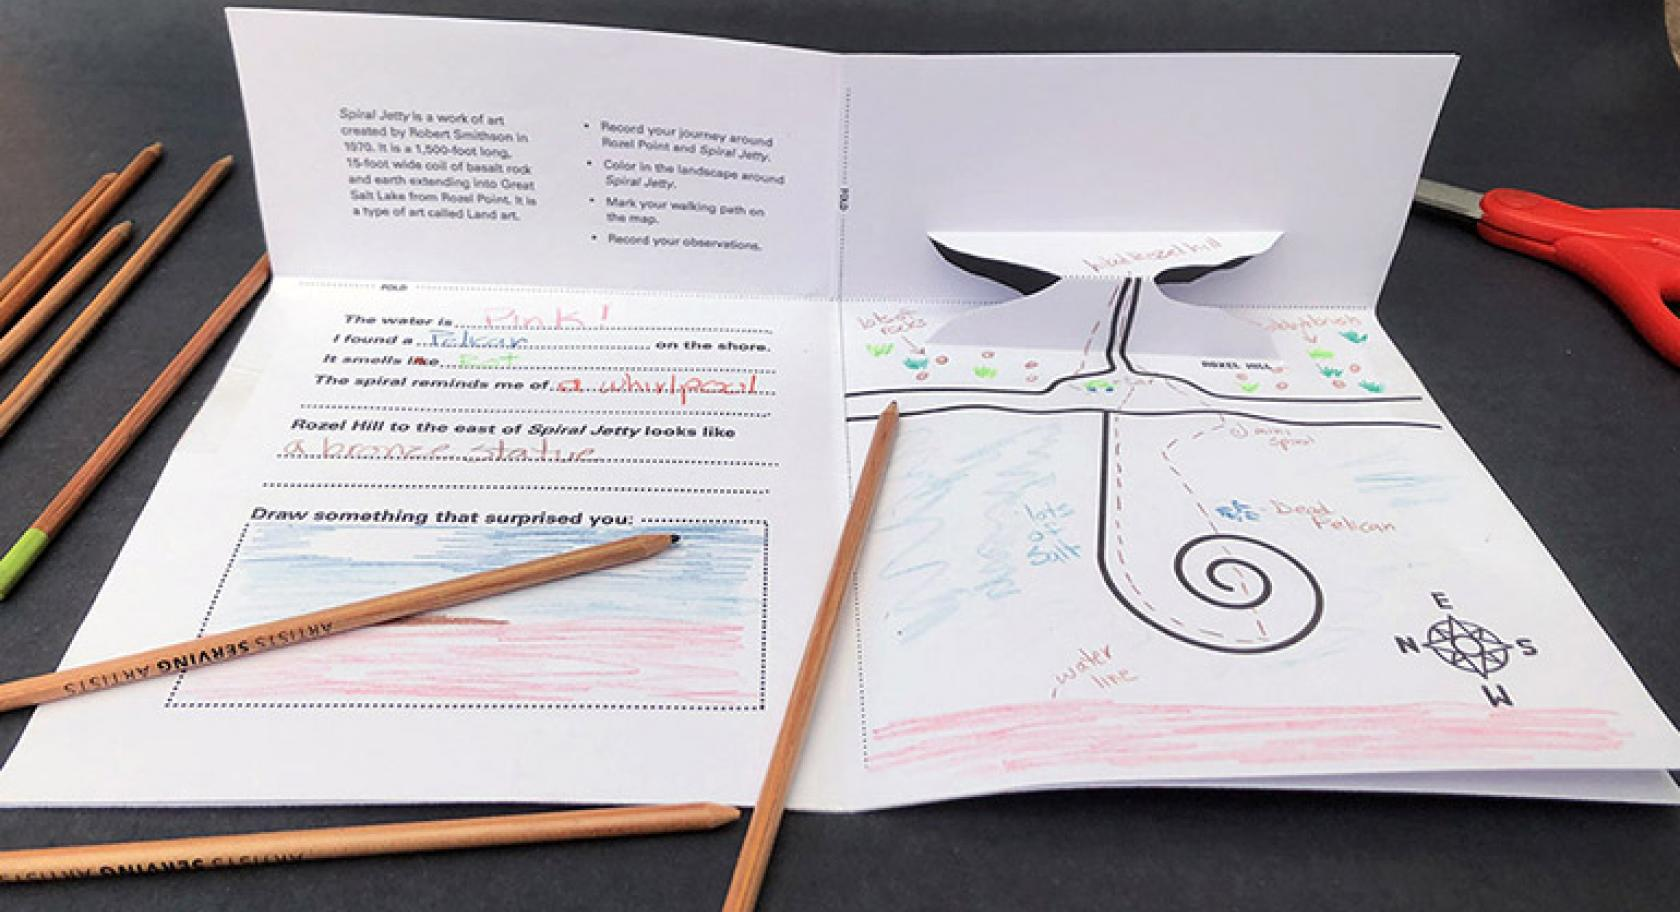 Completed Spiral Jetty field guide with pop up mountain